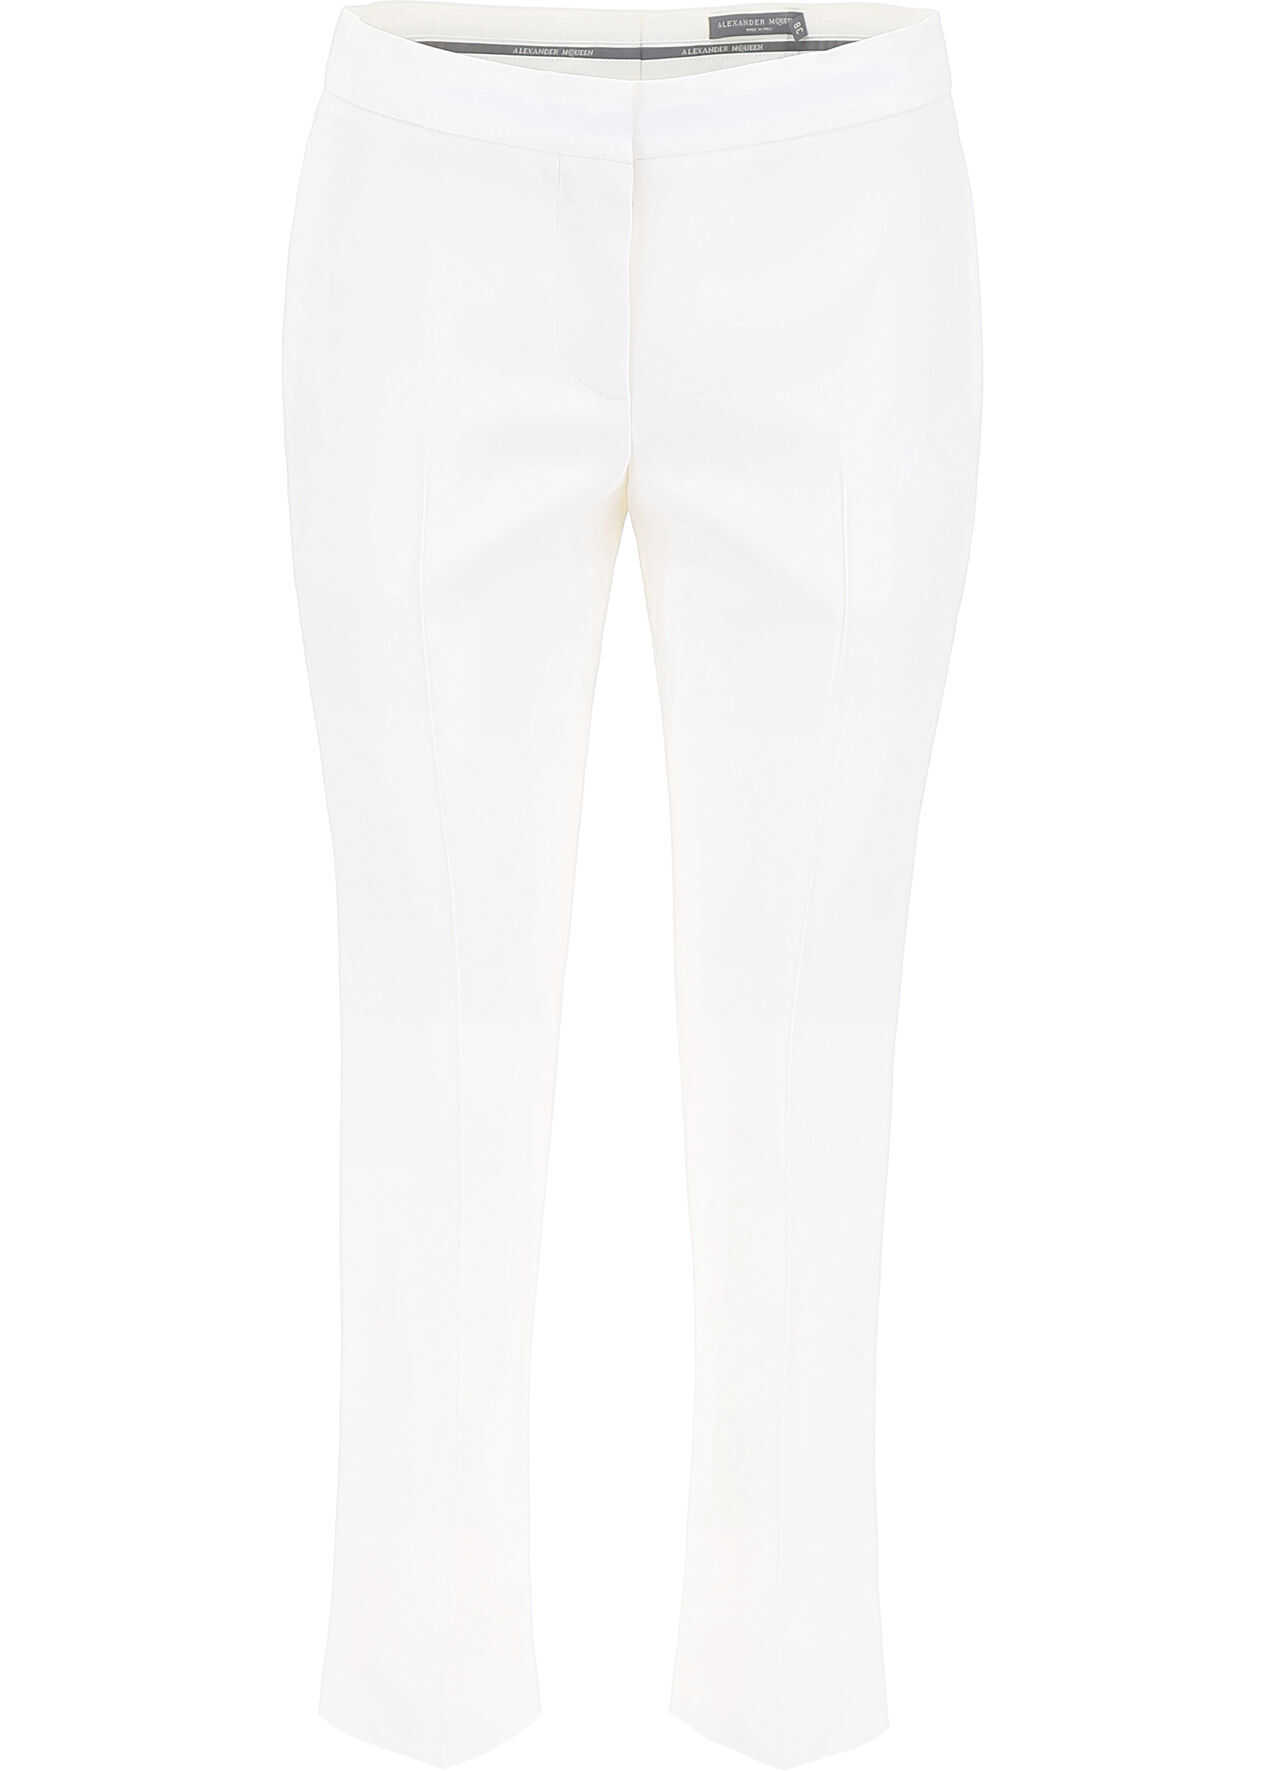 Alexander McQueen Classic Trousers IVORY